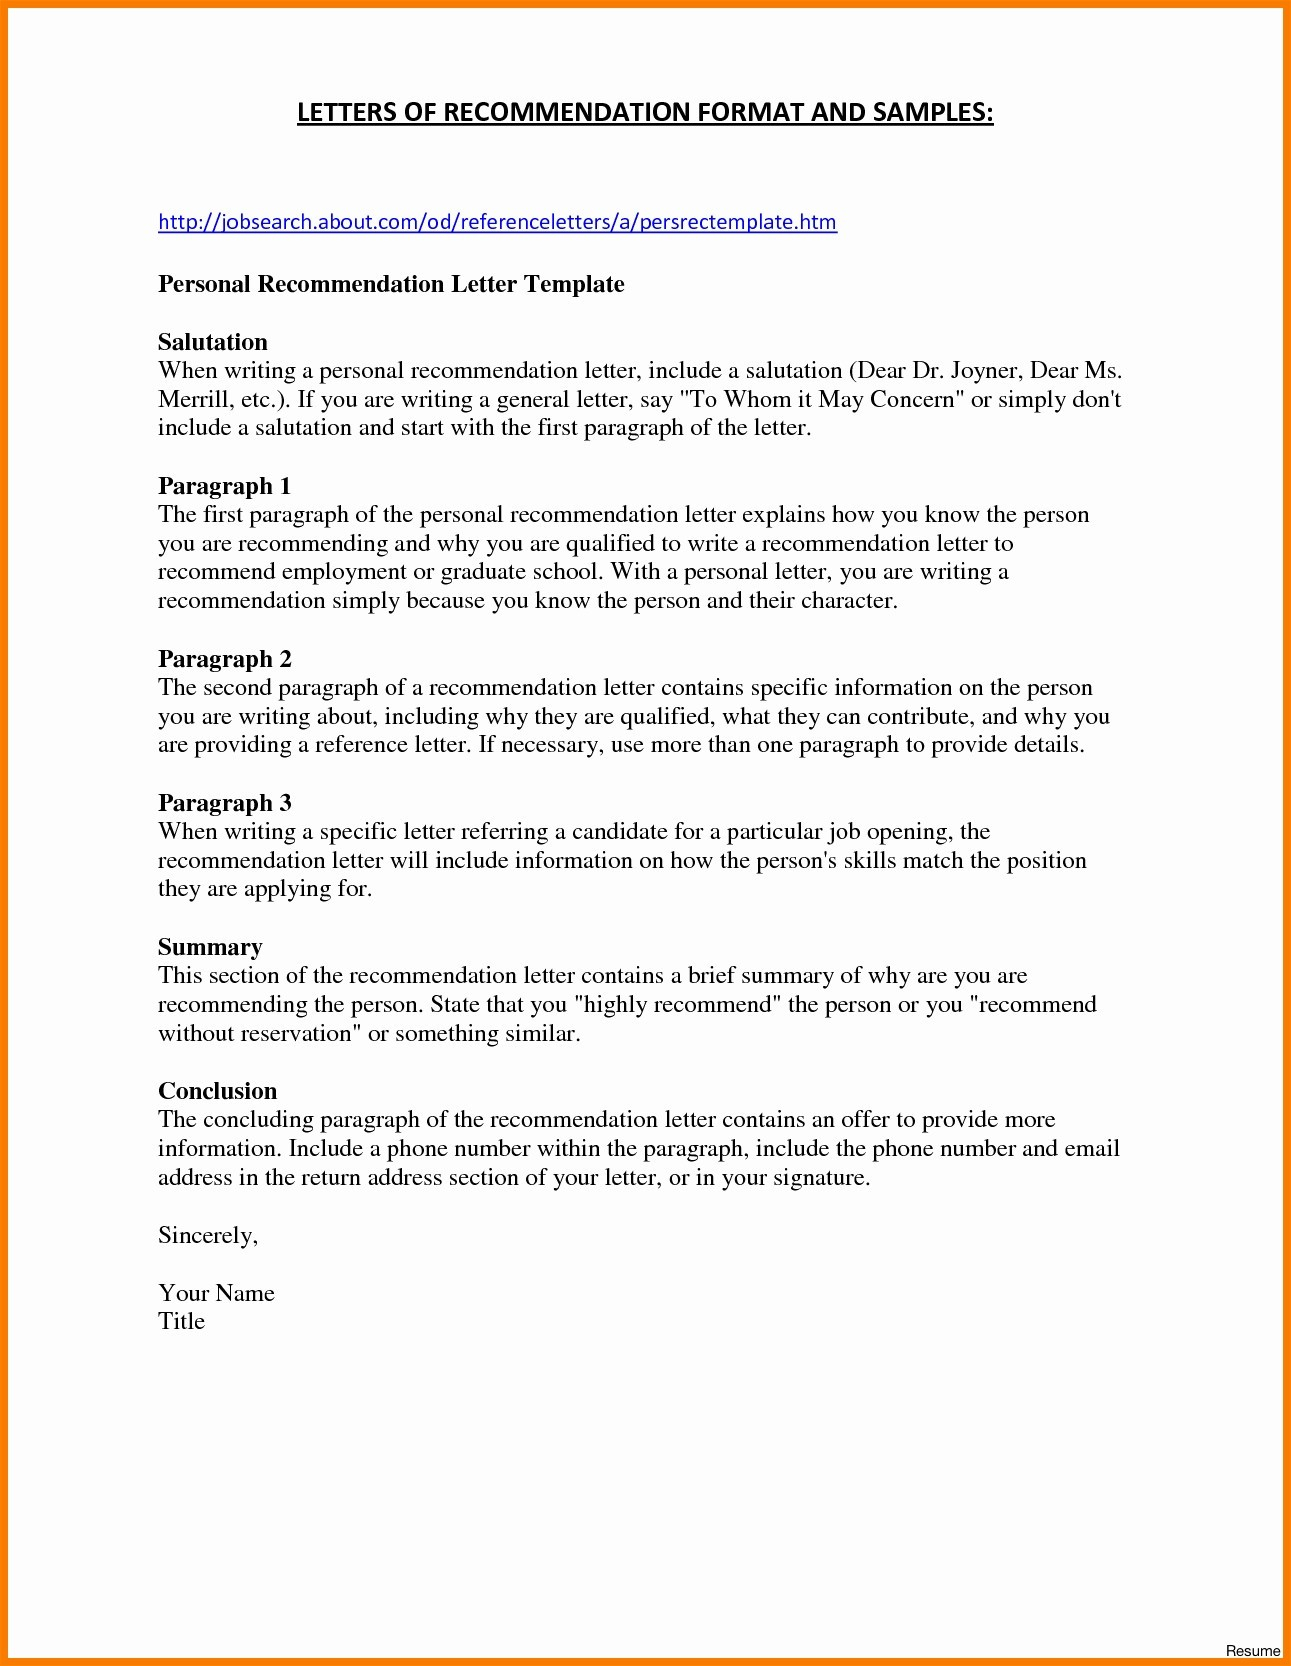 Business Letter format Template - Business Letter format Template Word Inspirationa Business Cover